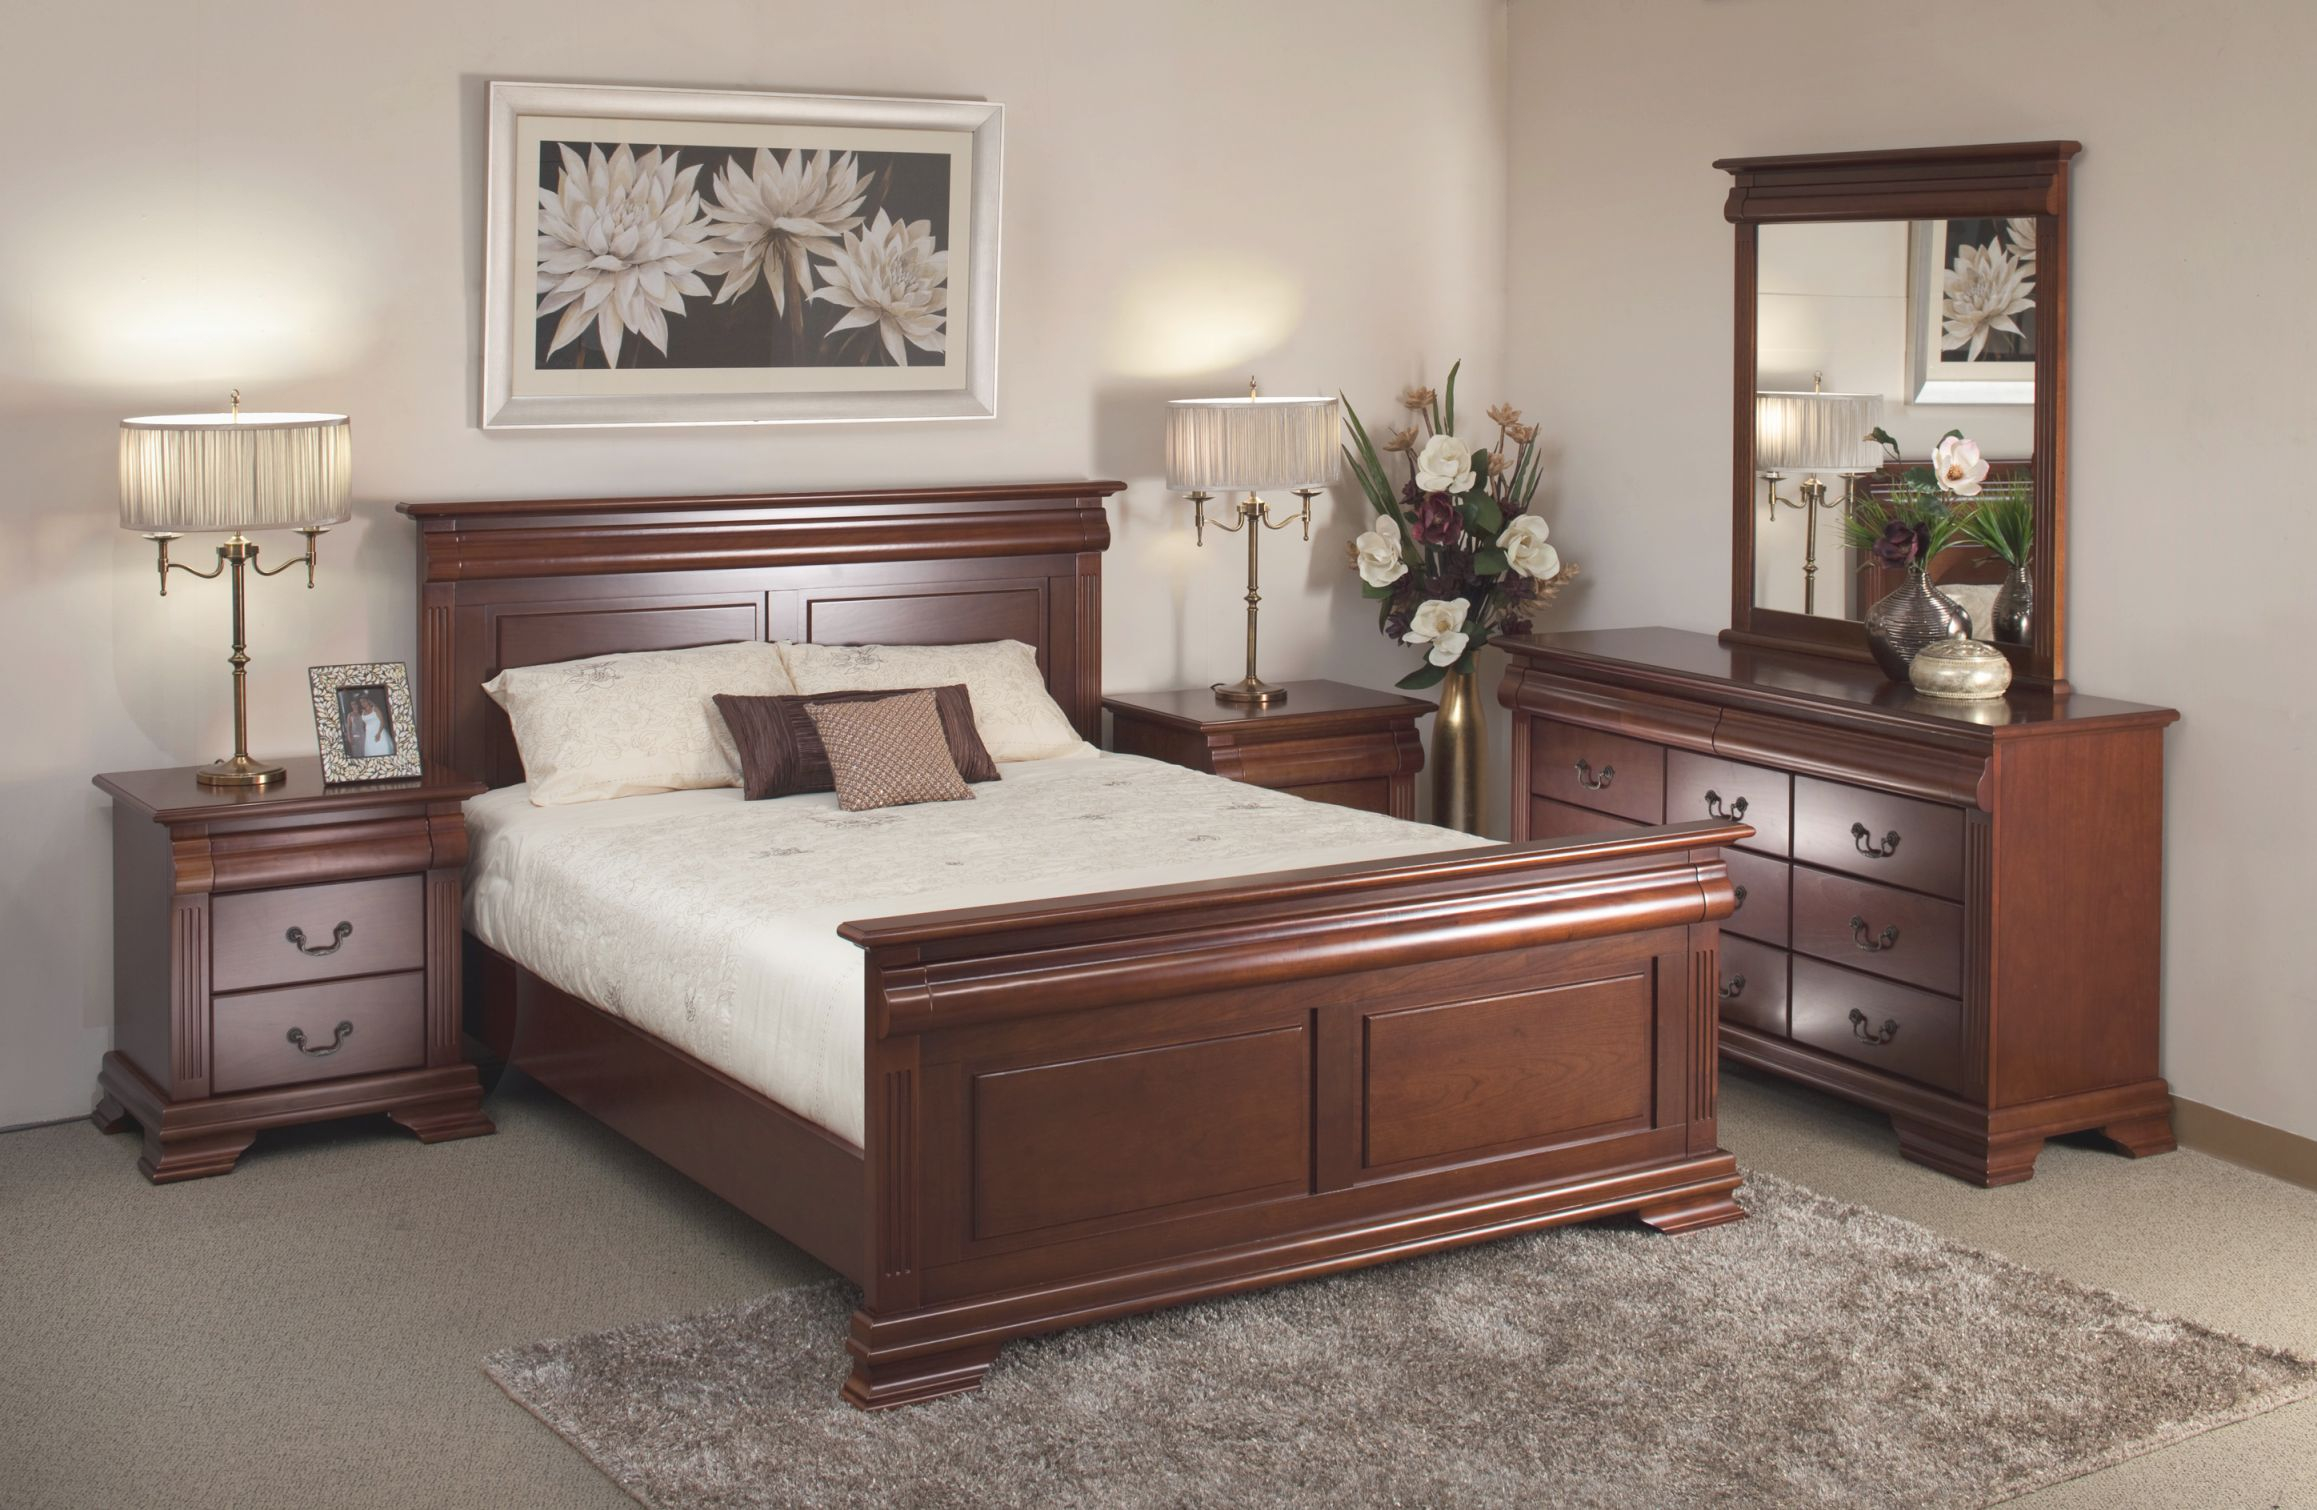 Bedroom Furniture For Completing The Bedroom in Inspirational Teen Bedroom Furniture Sets